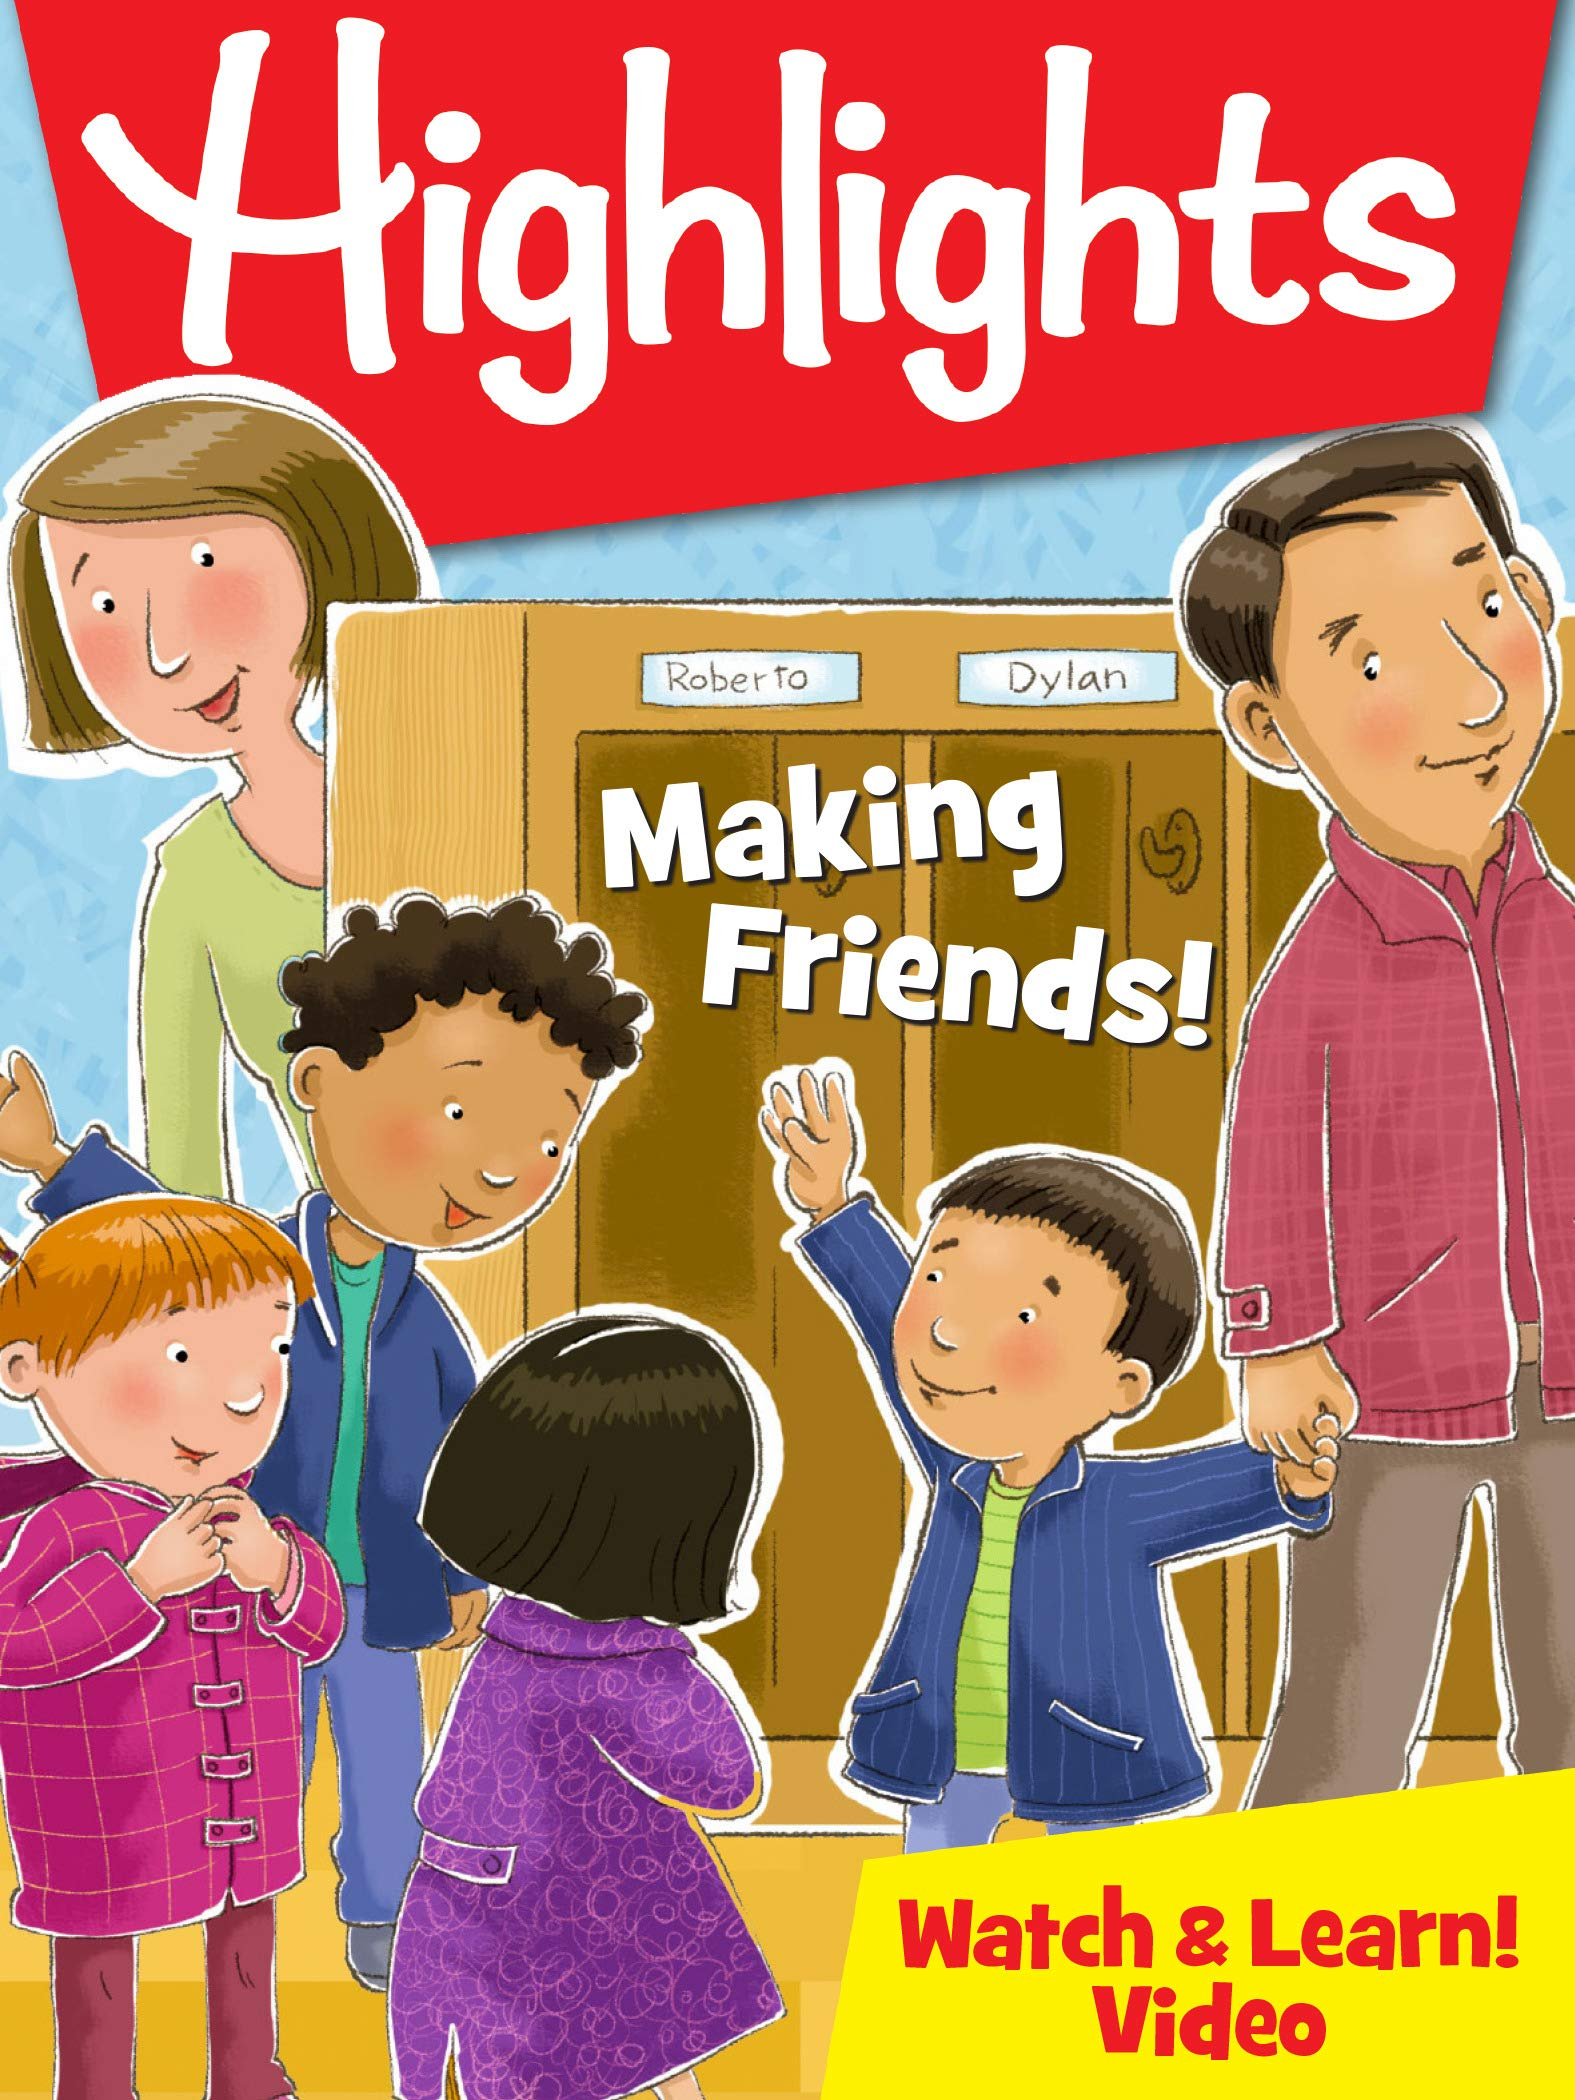 Highlights - Making Friends!